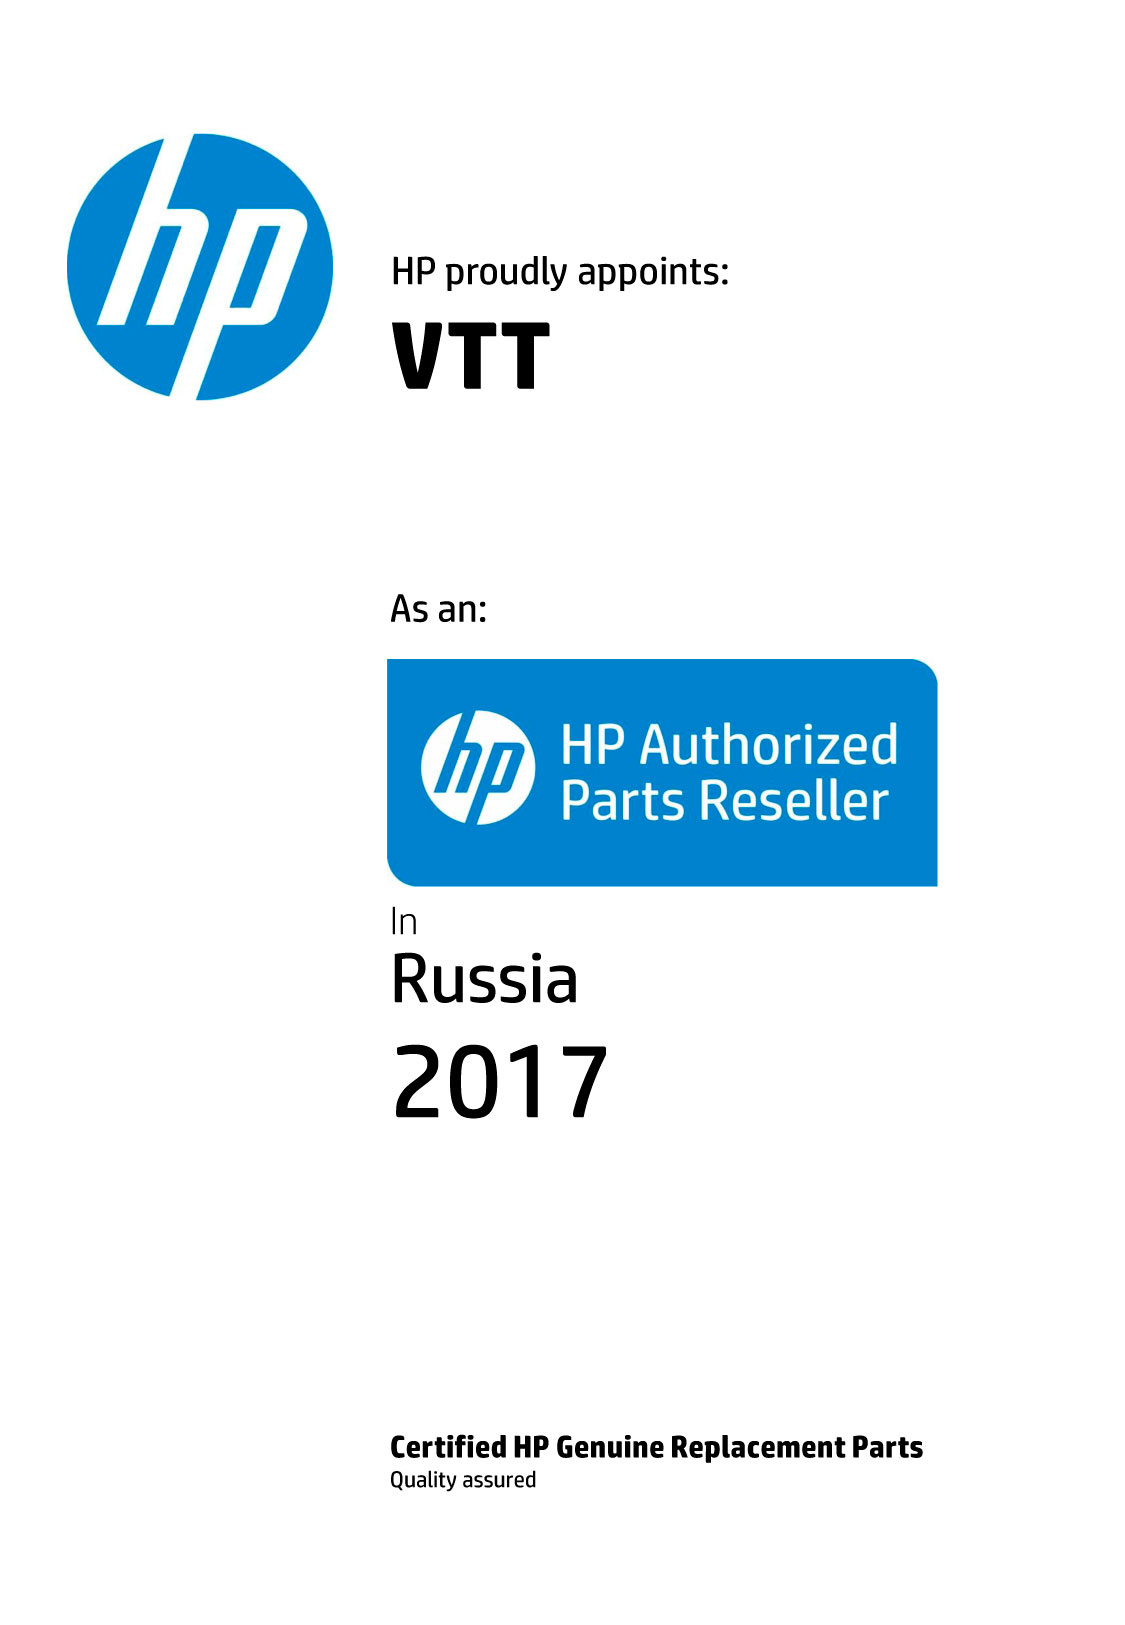 Sertifikat-HP-Authorized-Parts-Reseller---2017.jpg